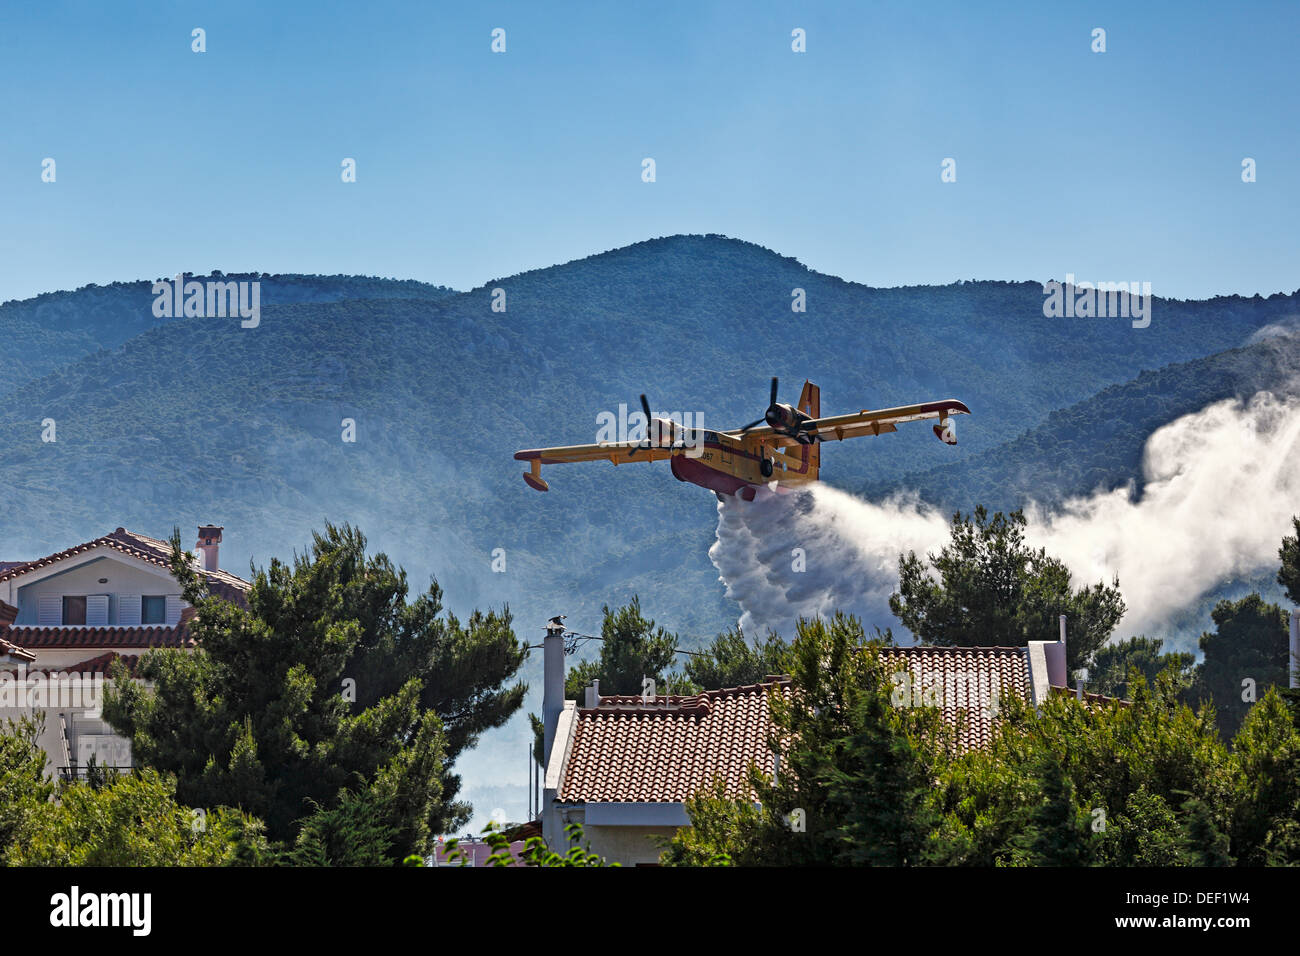 A fire fighting plane extinguished the fire over houses - Stock Image